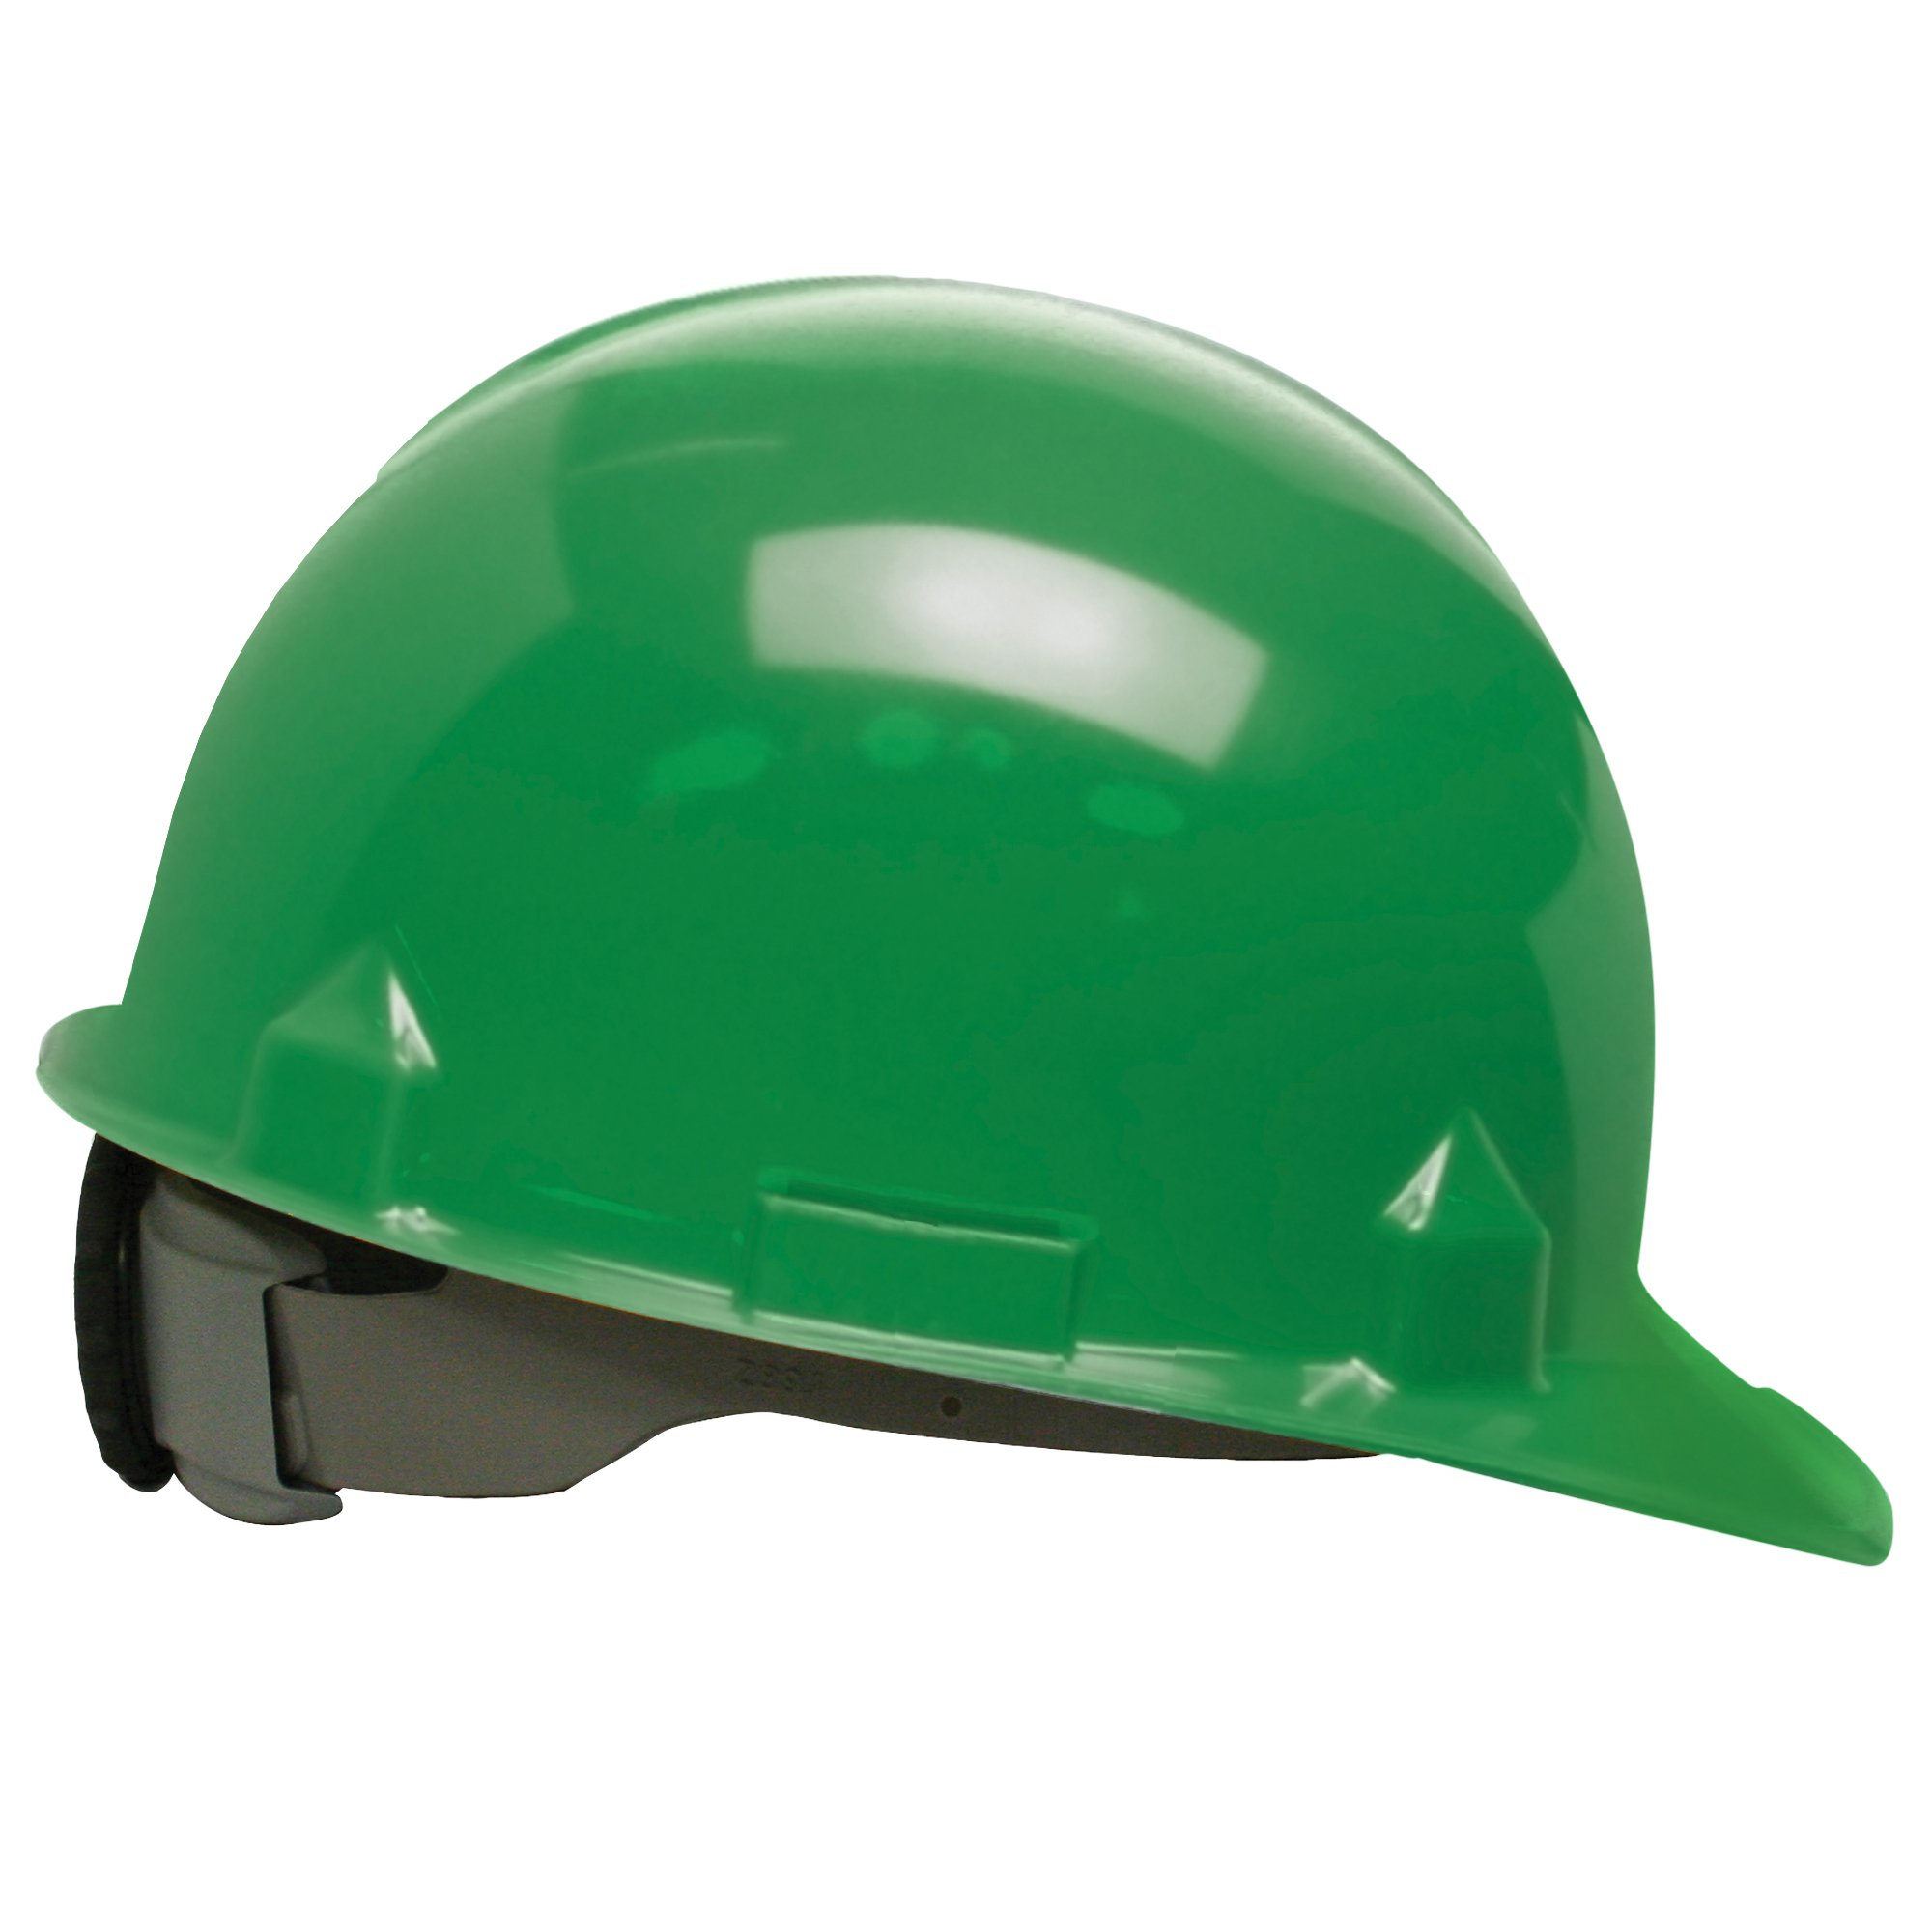 Jackson Safety SC-6 Hard Hat (14837), 4-Point Ratchet Suspension, Smooth Dome, Meets ANSI, Green, 12 / Case